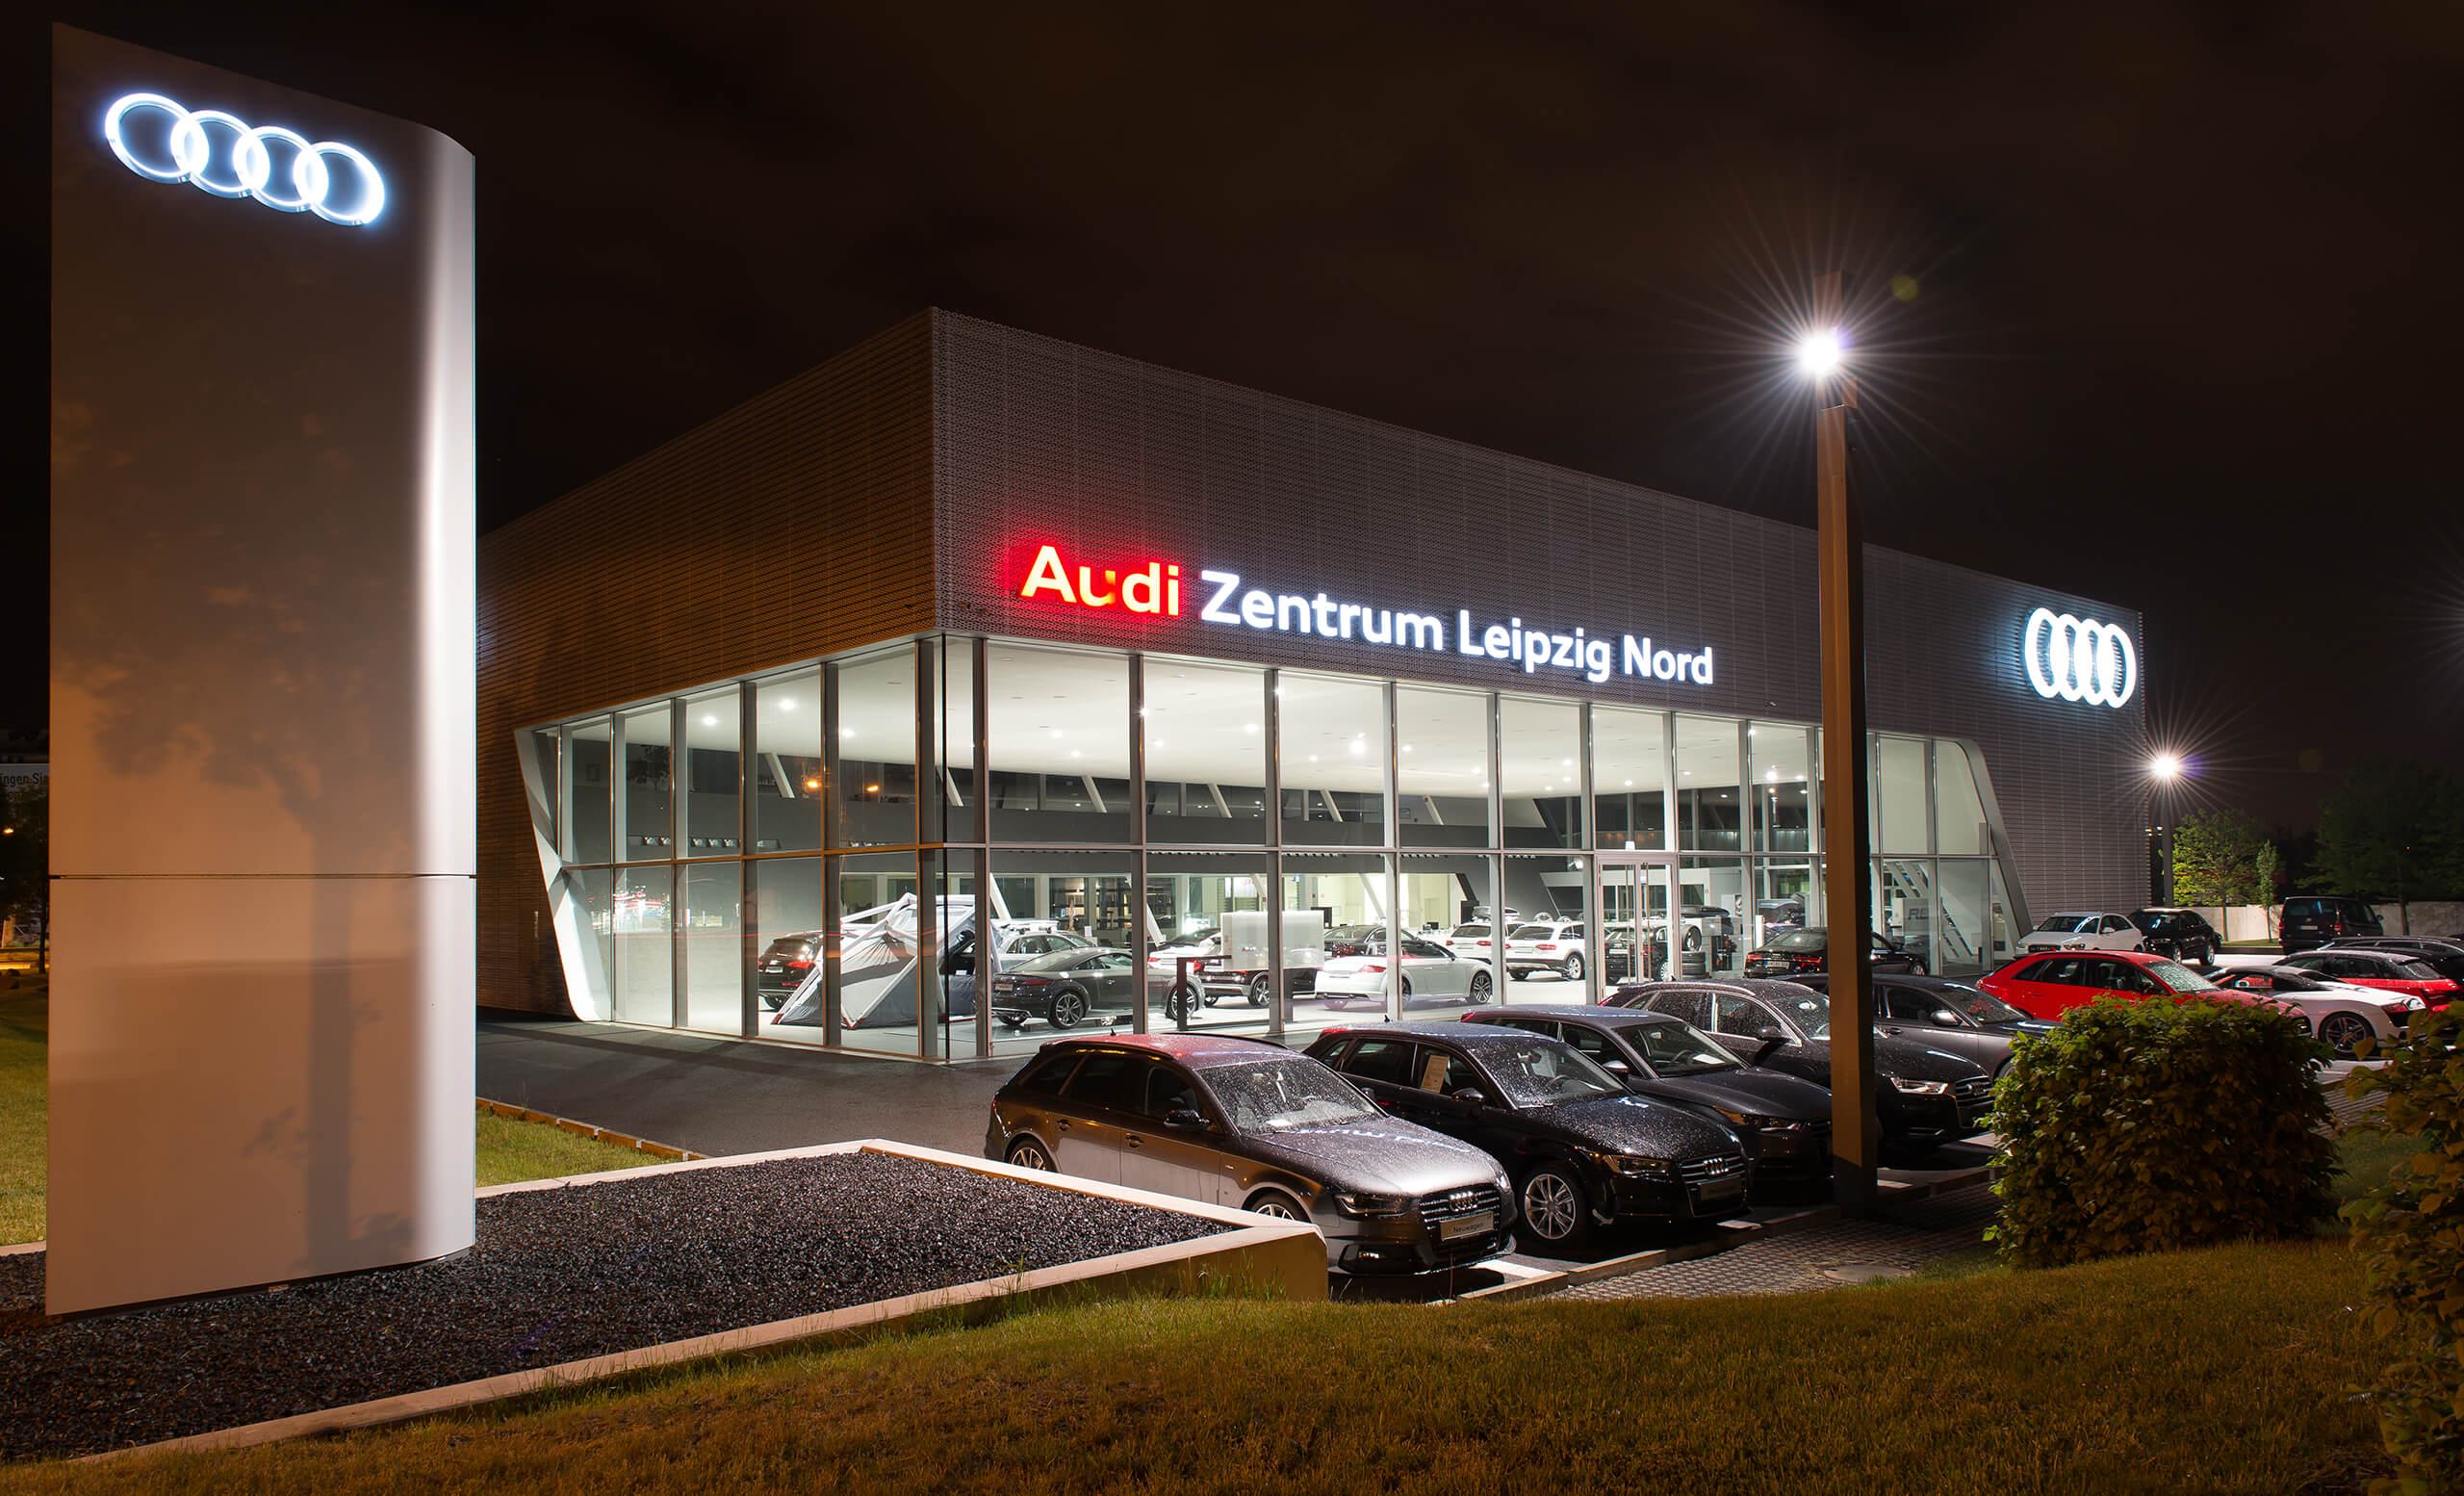 audi zentrum leipzig nord joizta langbecker. Black Bedroom Furniture Sets. Home Design Ideas